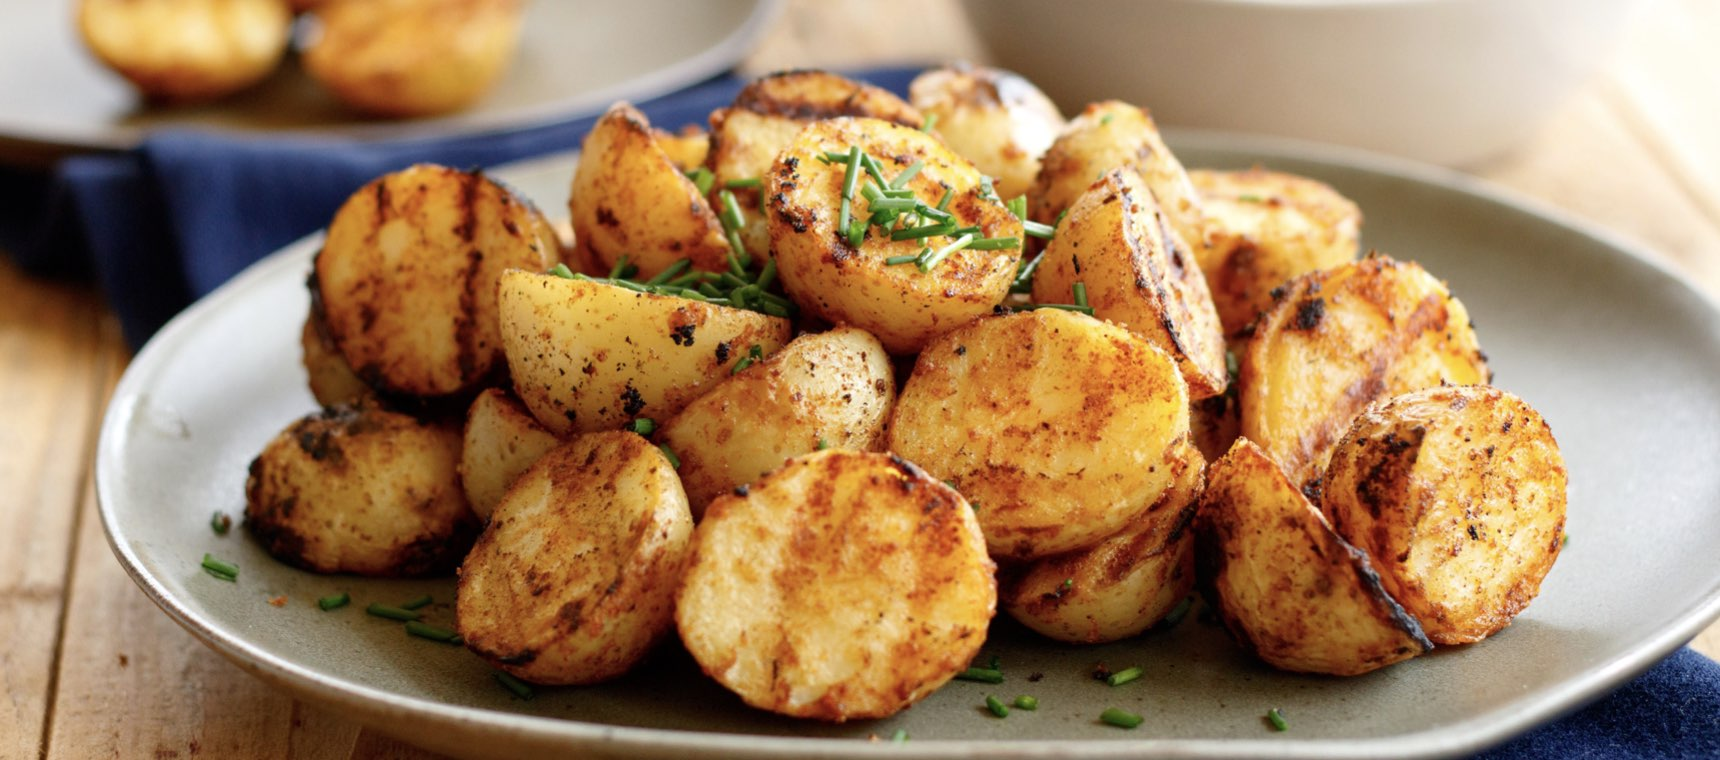 Grilled Potatoes with Ranch Sauce